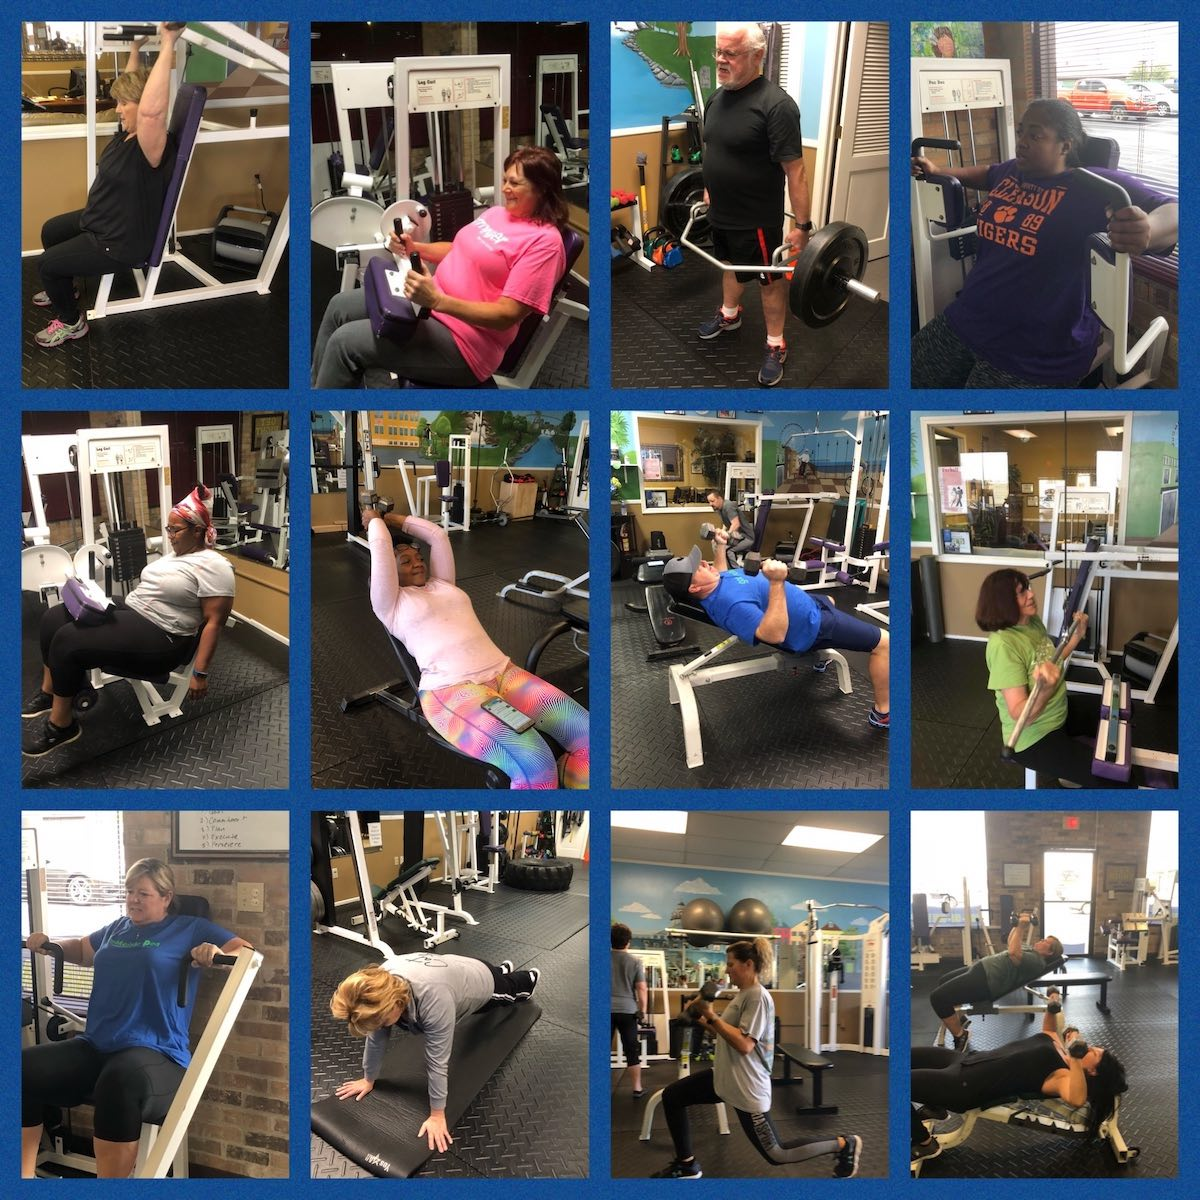 Even if you've never stepped foot in a gym before you'll feel right at home at GetRight!  and if you are an experienced gym goer we promise to offer a program that will challenge you and help you achieve your goals too!